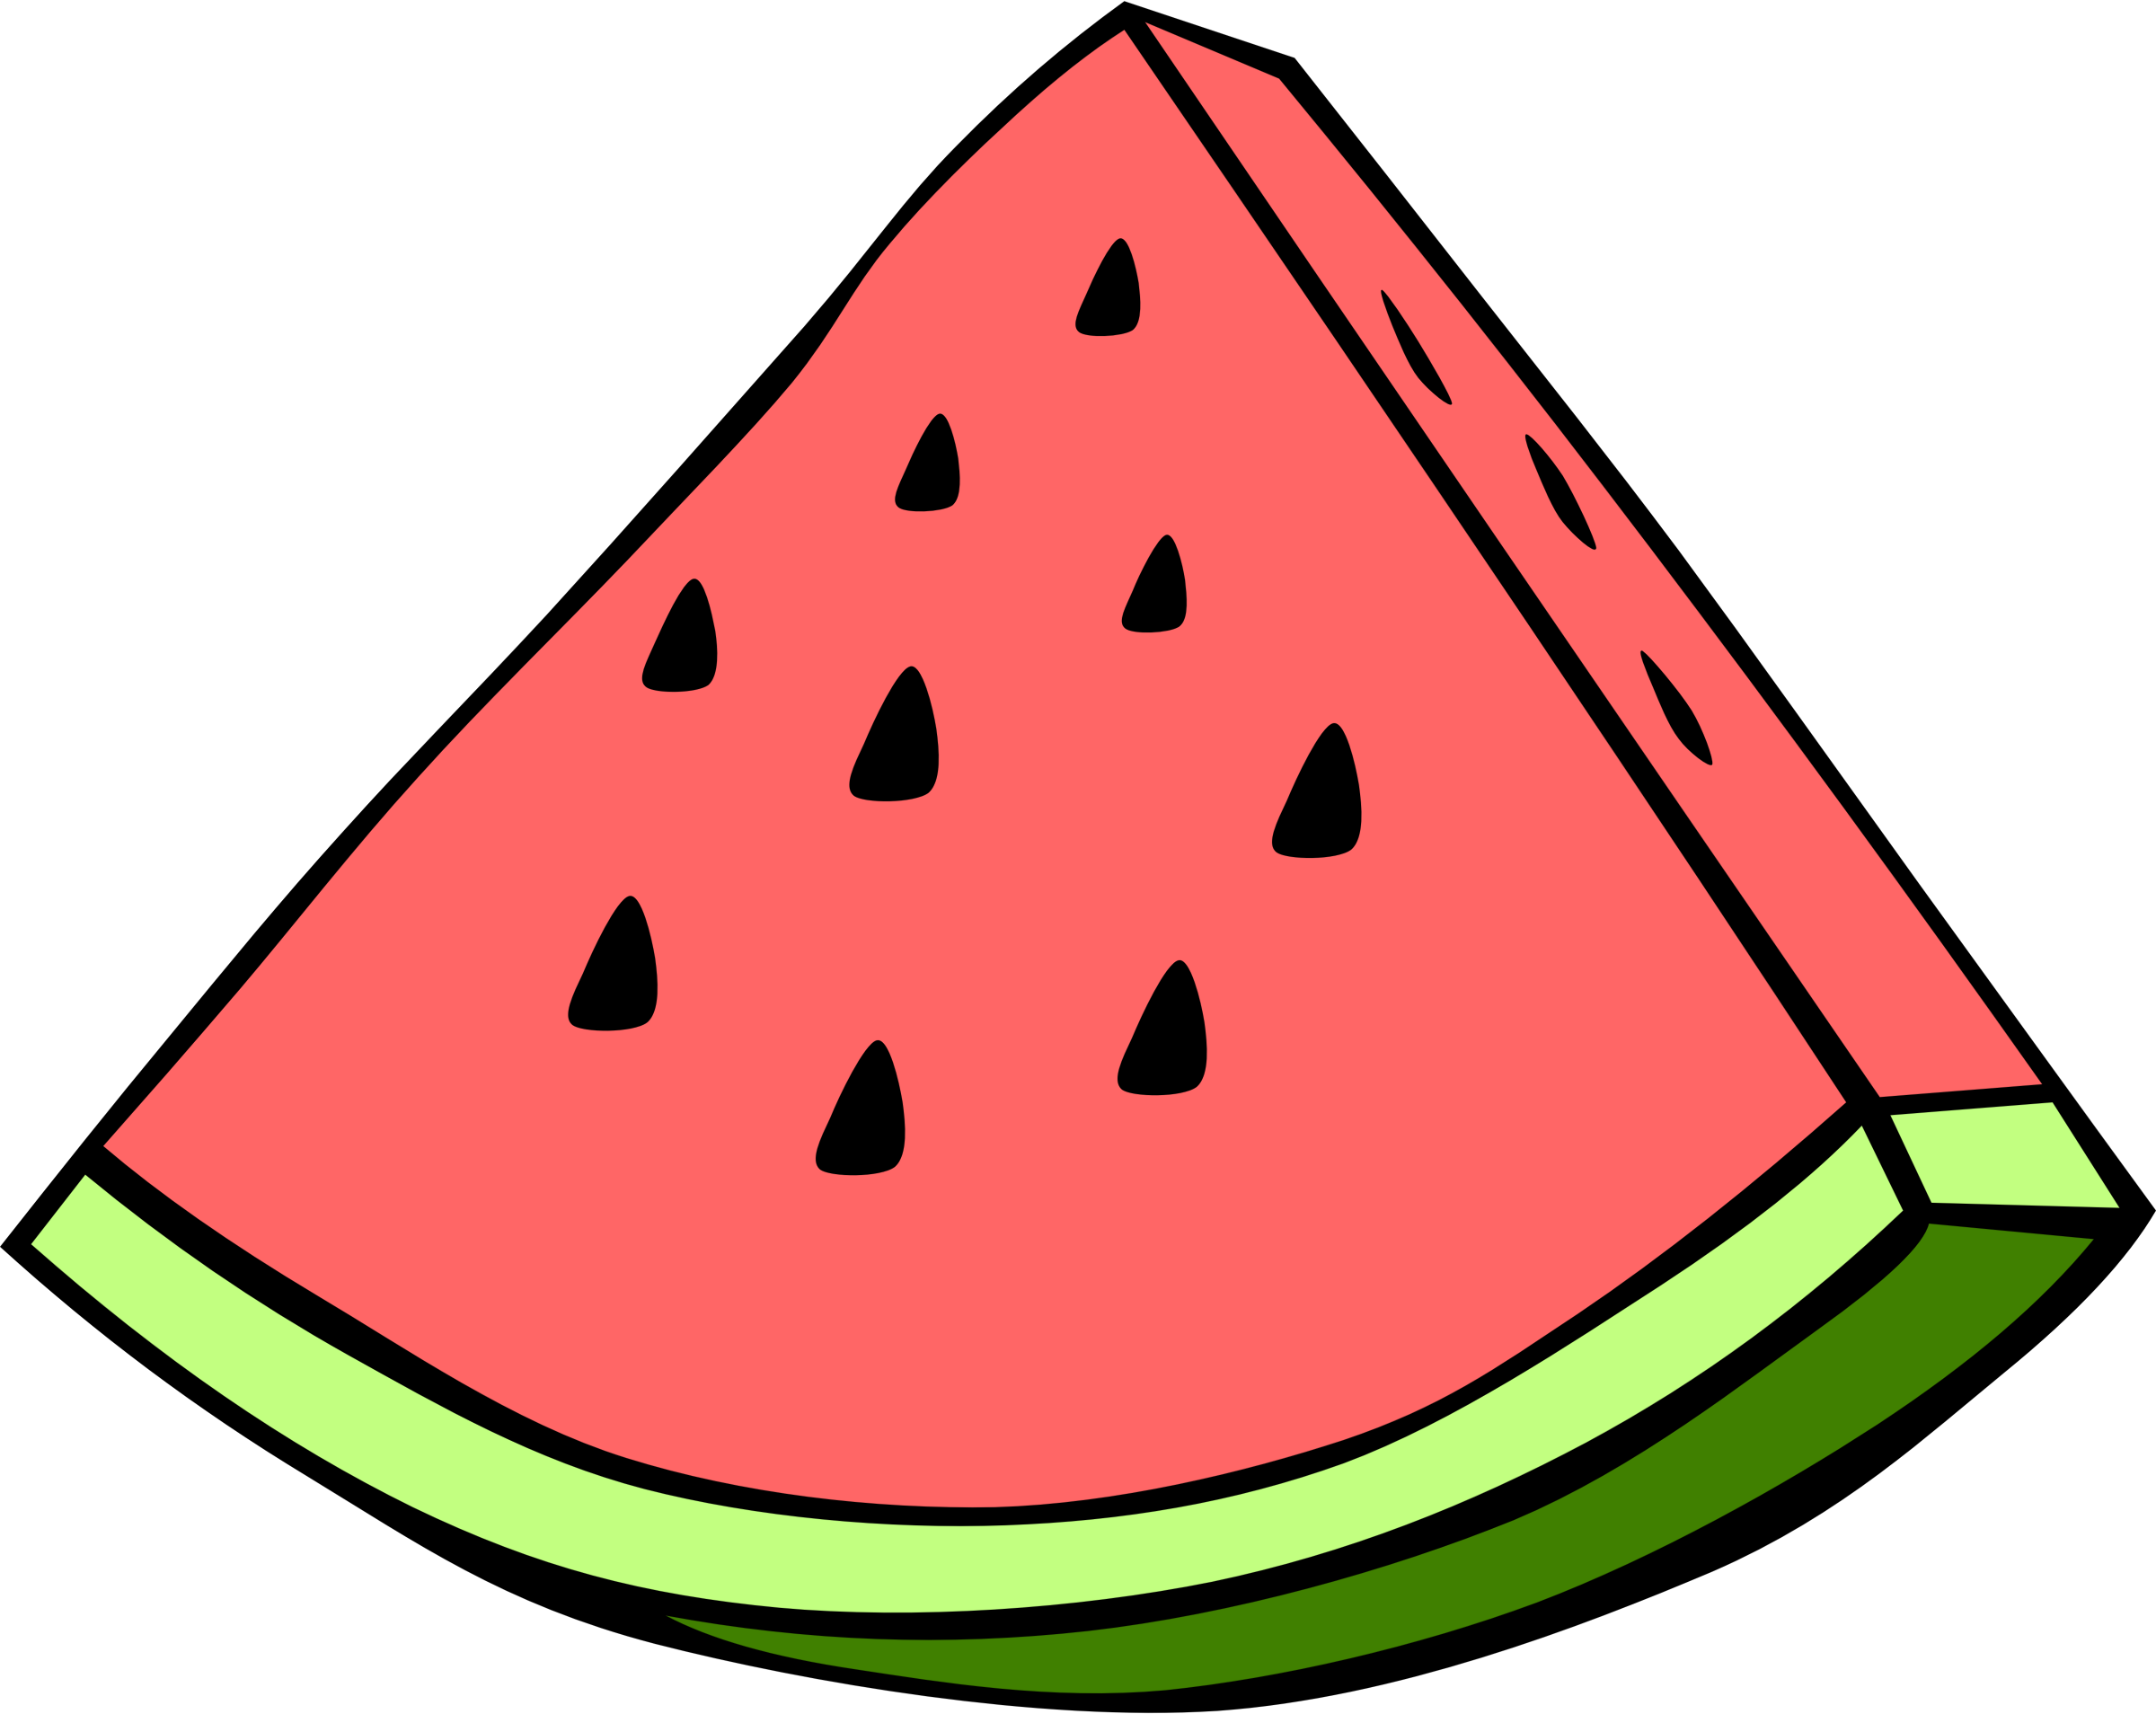 Image result for fruit image simple